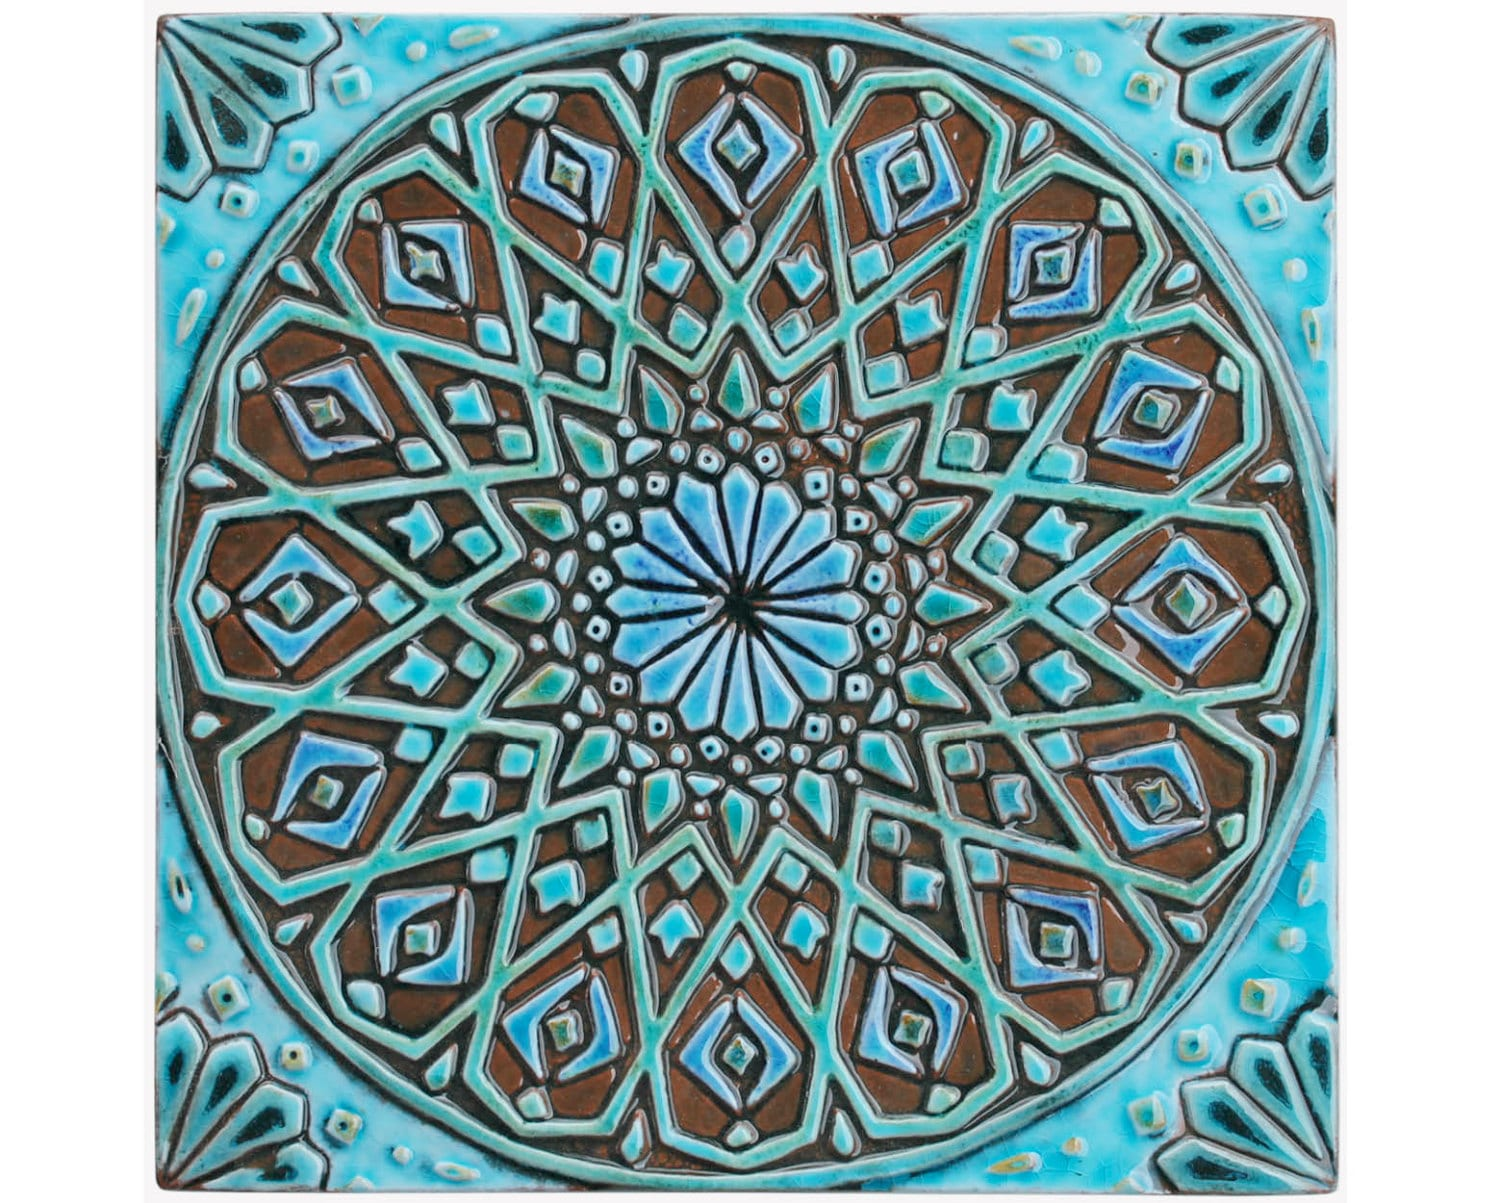 Moroccan Wall Art Made From Ceramic Outdoor Wall Art  sc 1 st  Elitflat & Moroccan Style Wall Art - Elitflat